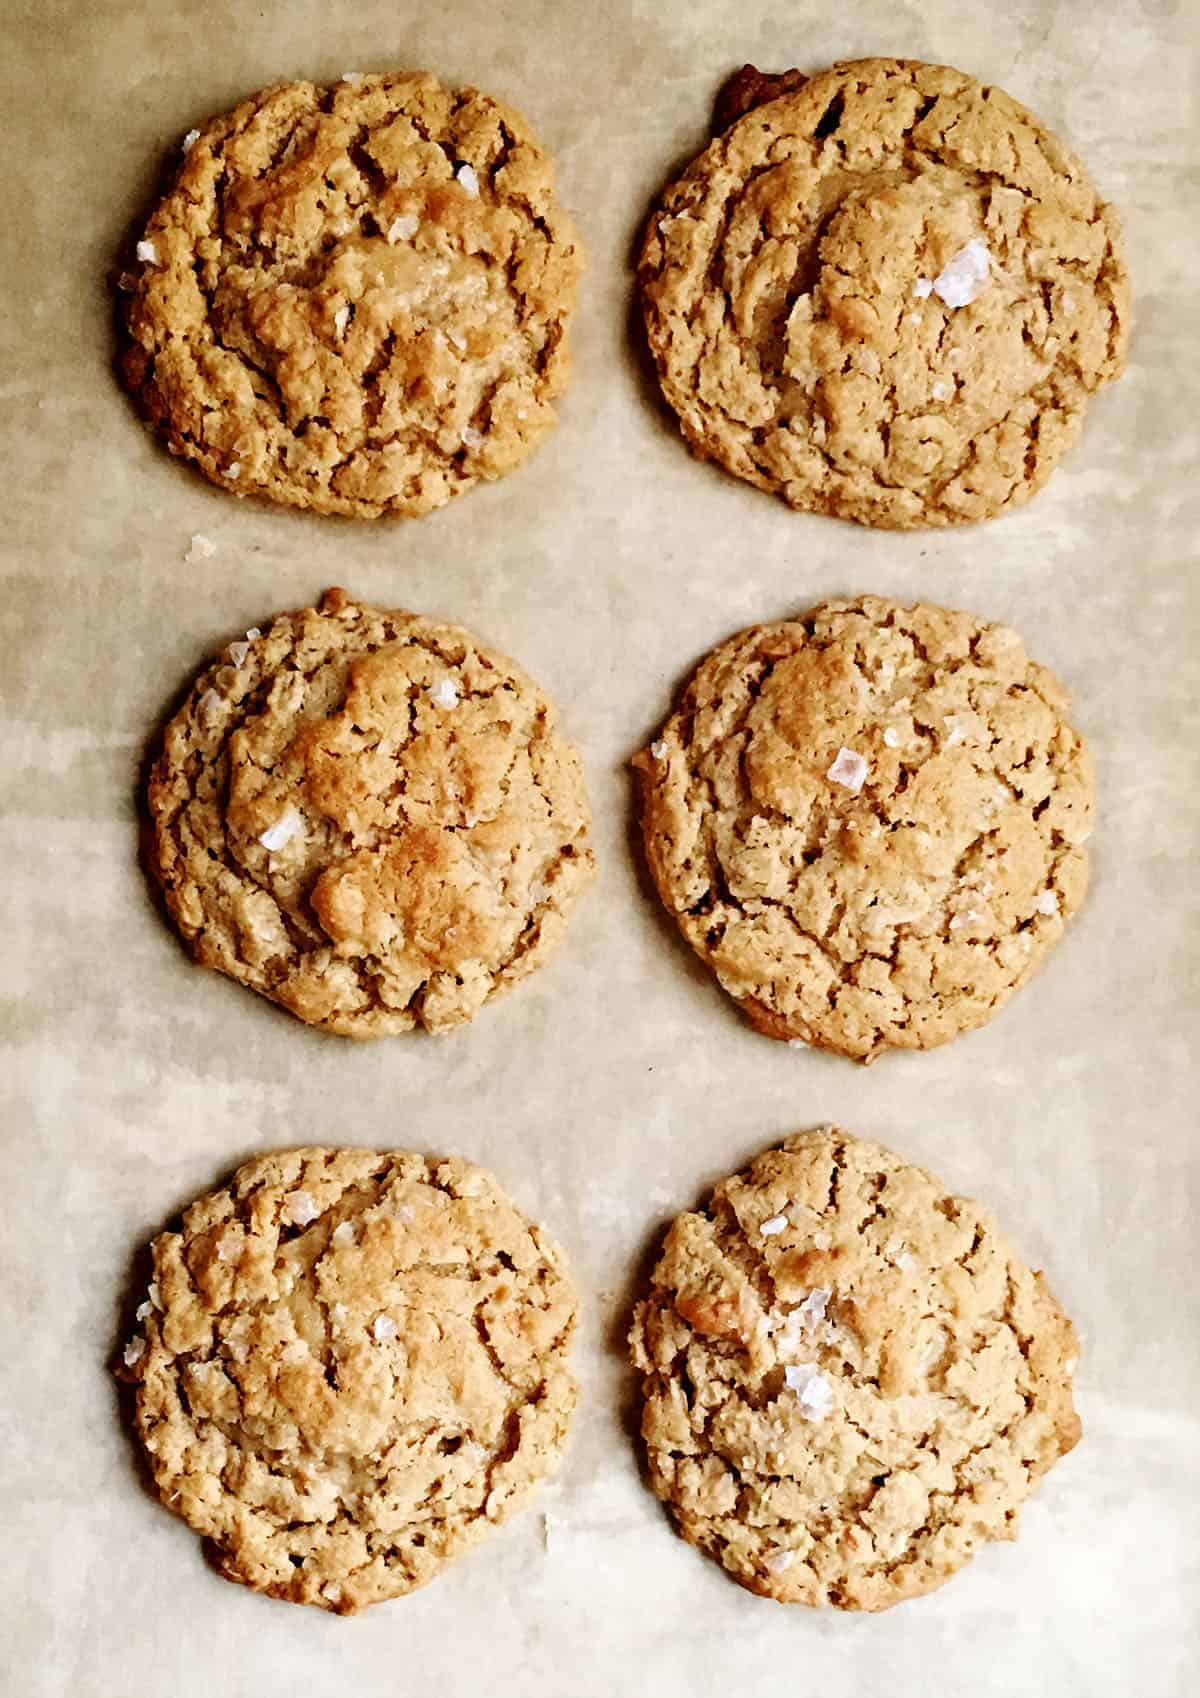 Peanut Butter Oatmeal Cookies on parchment paper